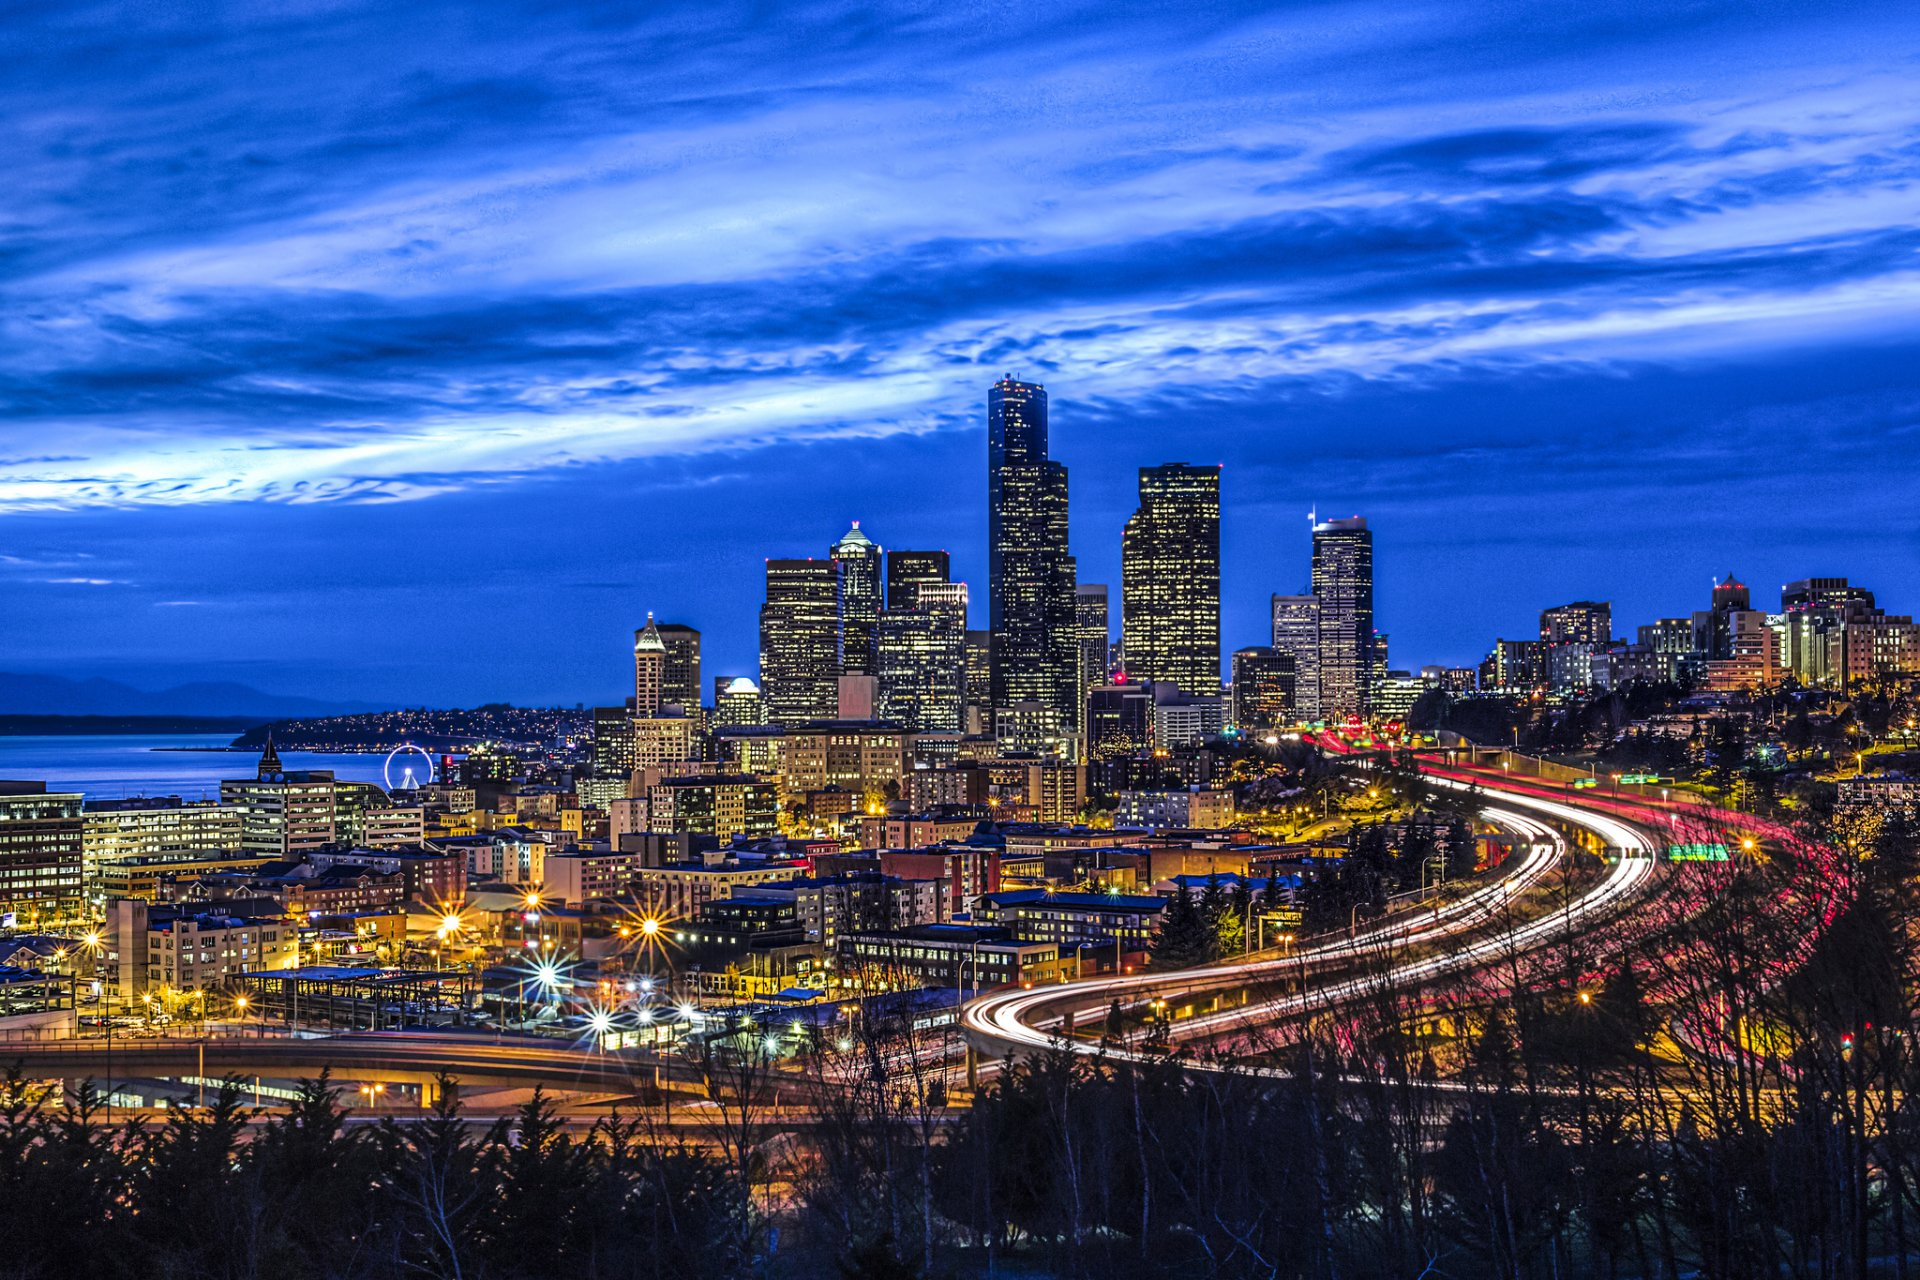 Bing Hd Wallpaper Fall Seattle Cityscape At Dusk Full Hd Wallpaper And Background